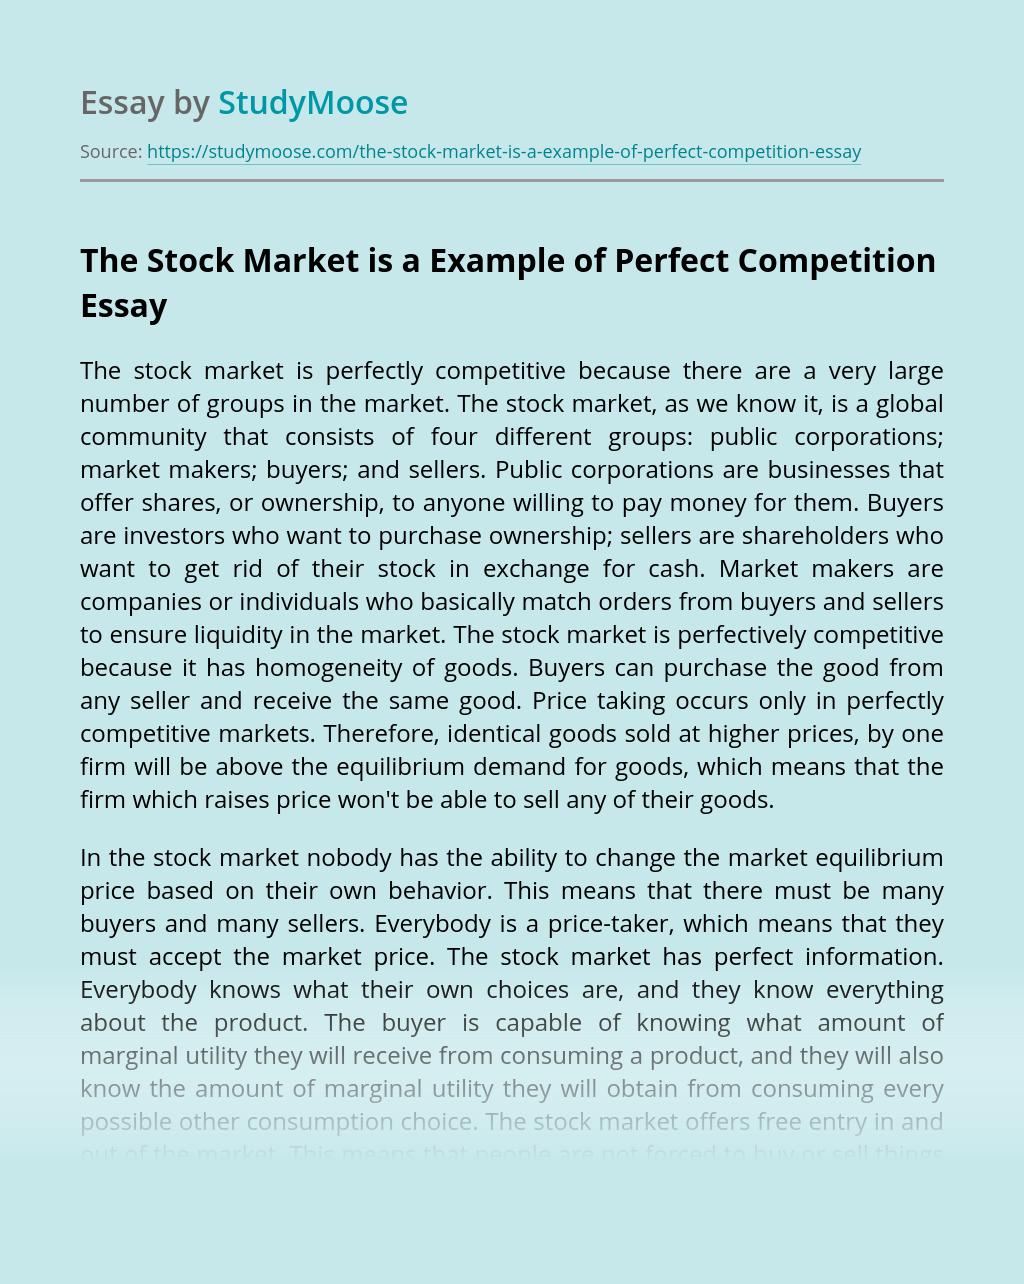 The Stock Market is a Example of Perfect Competition